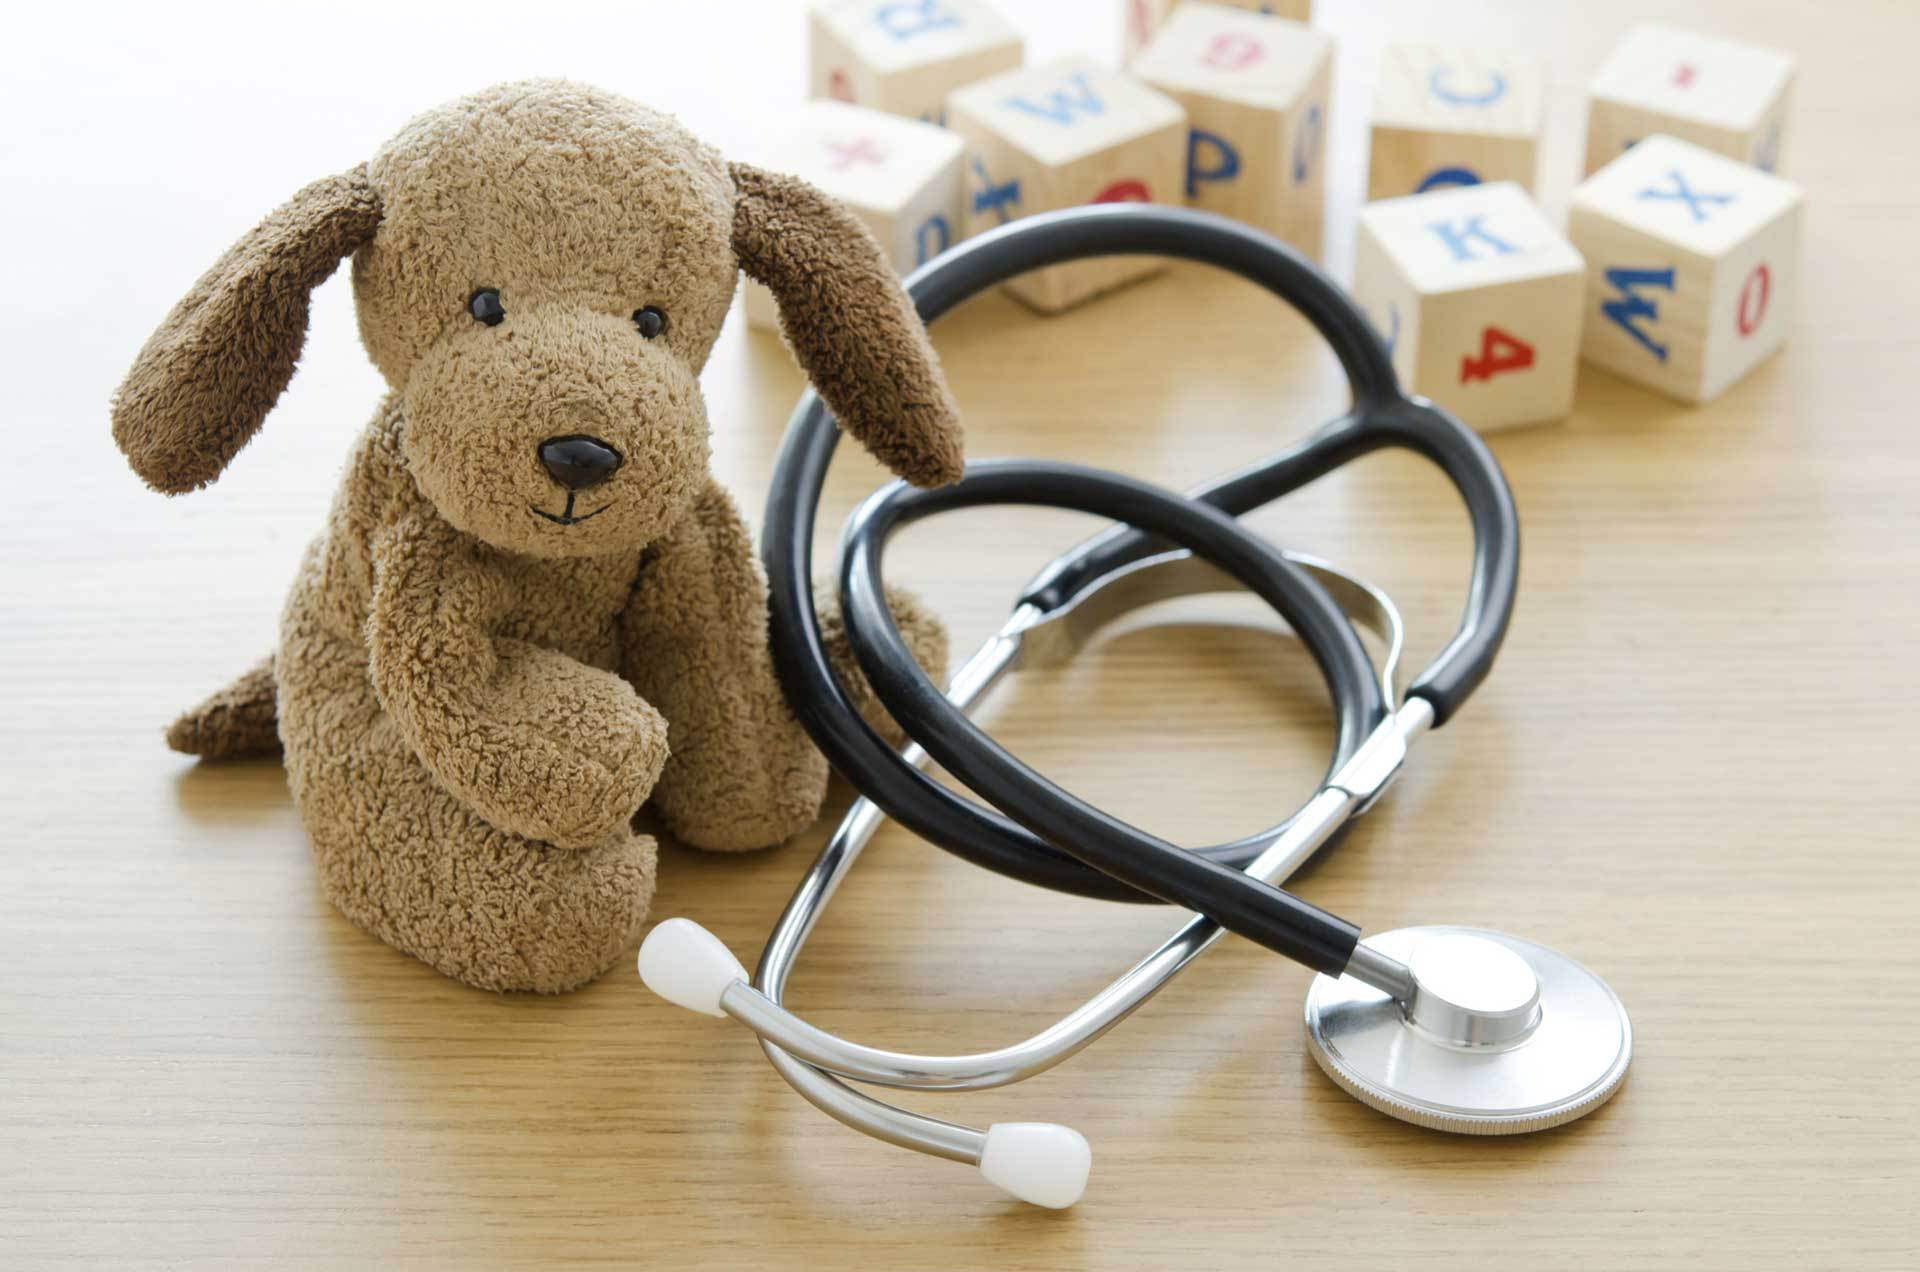 Stuffed teddy bear with stethoscope and blocks